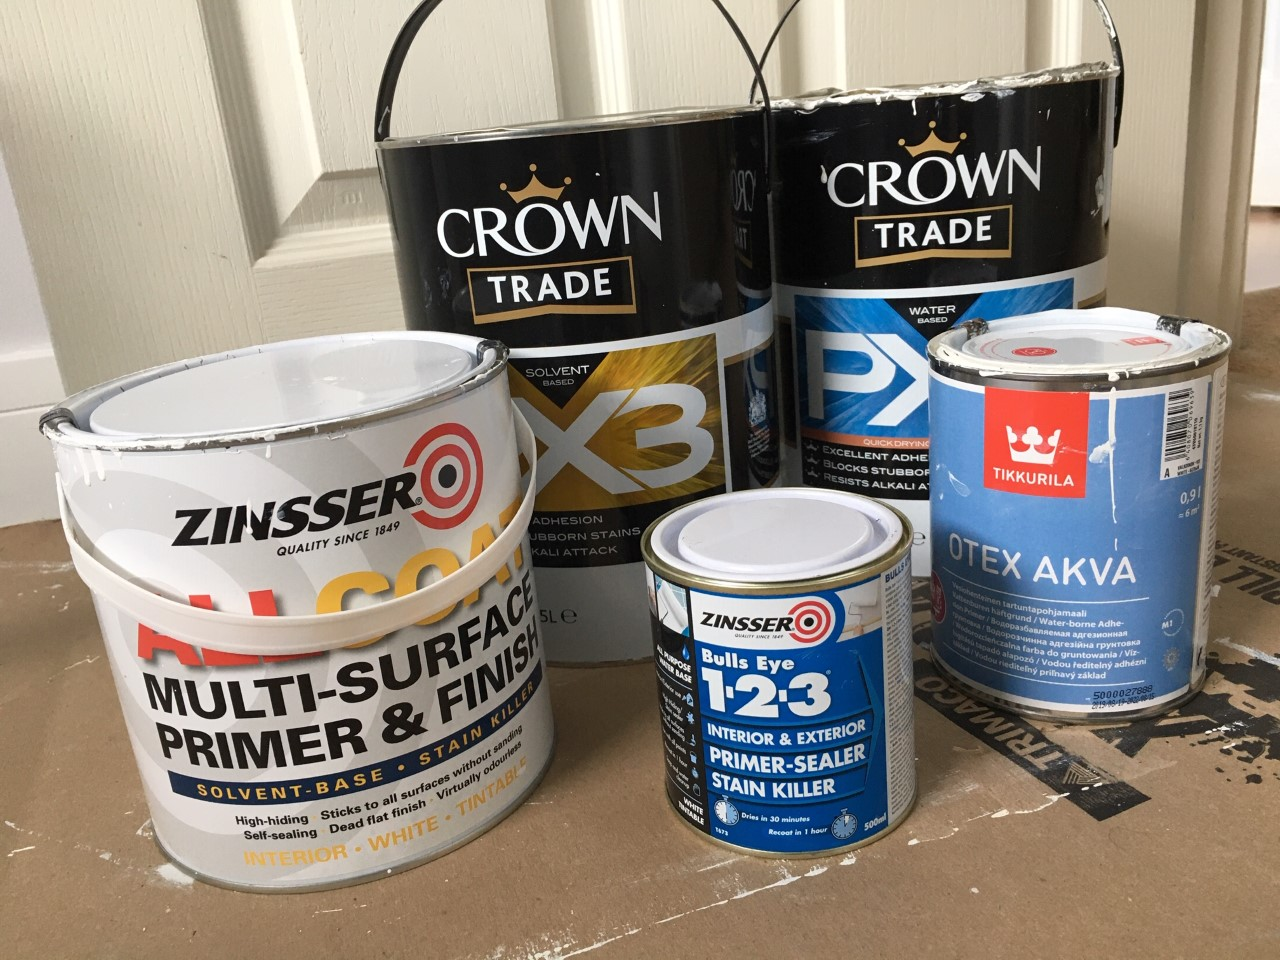 The Best Adhesion Primer on the Market - a comparison